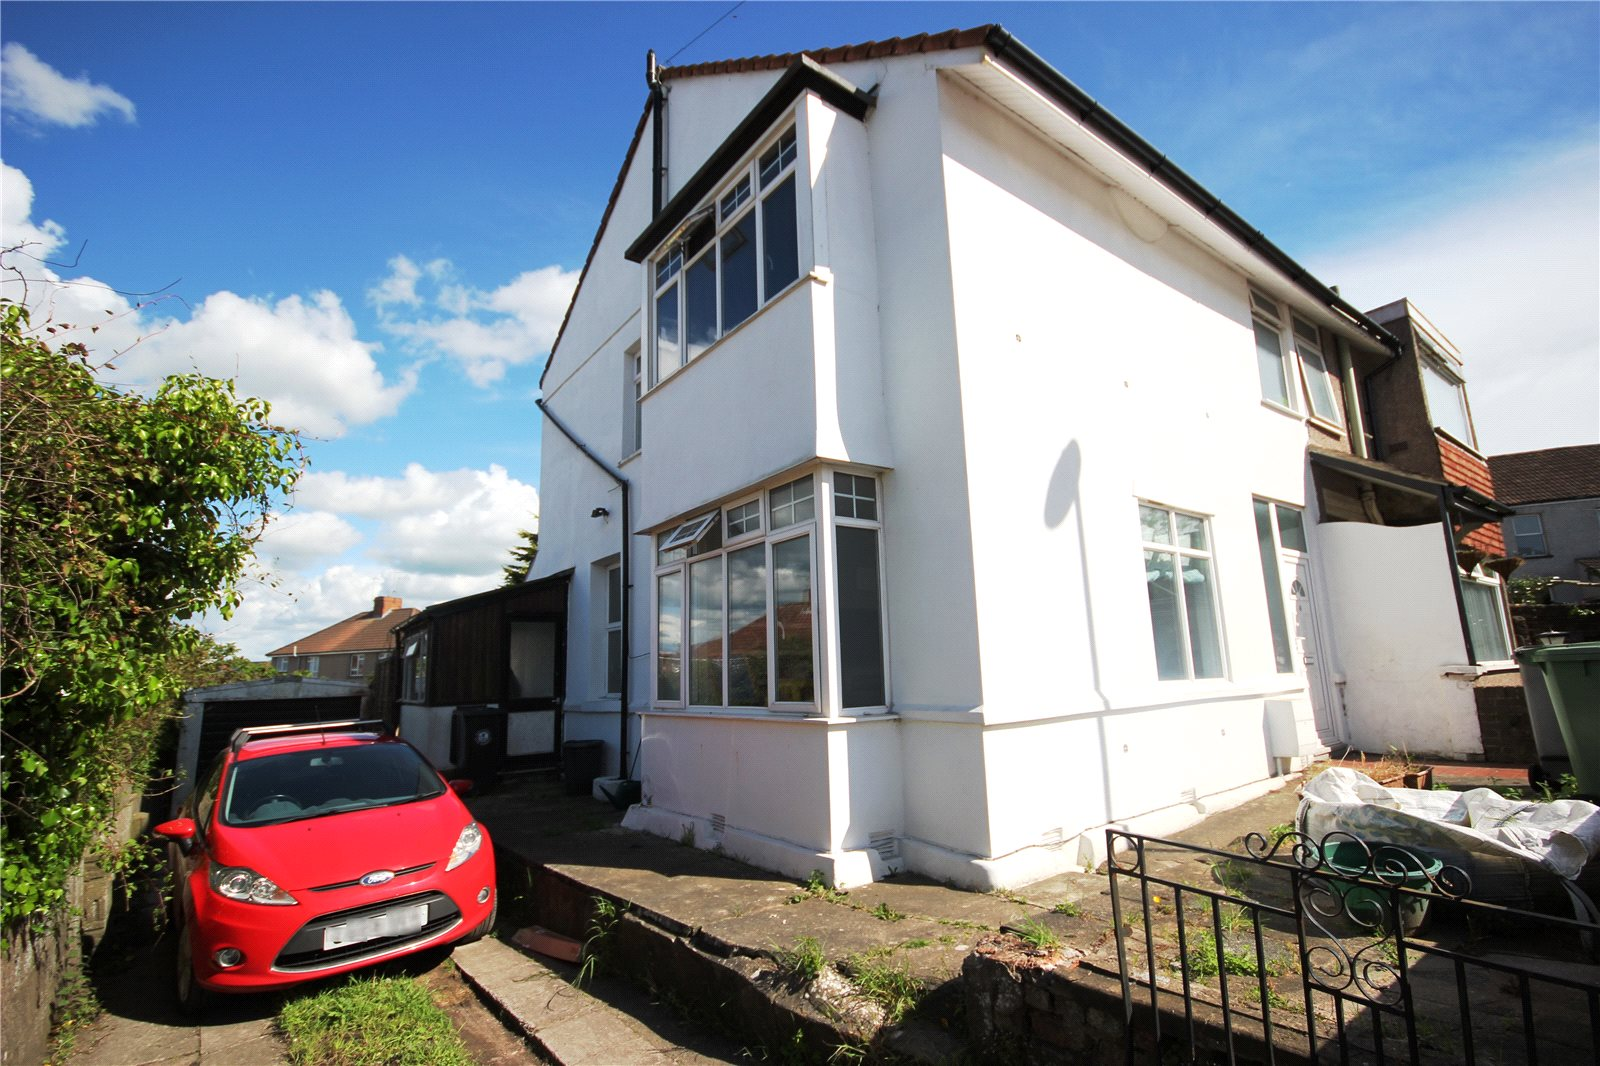 3 Bedrooms Semi Detached House for sale in Dorset Road Kingswood Bristol BS15